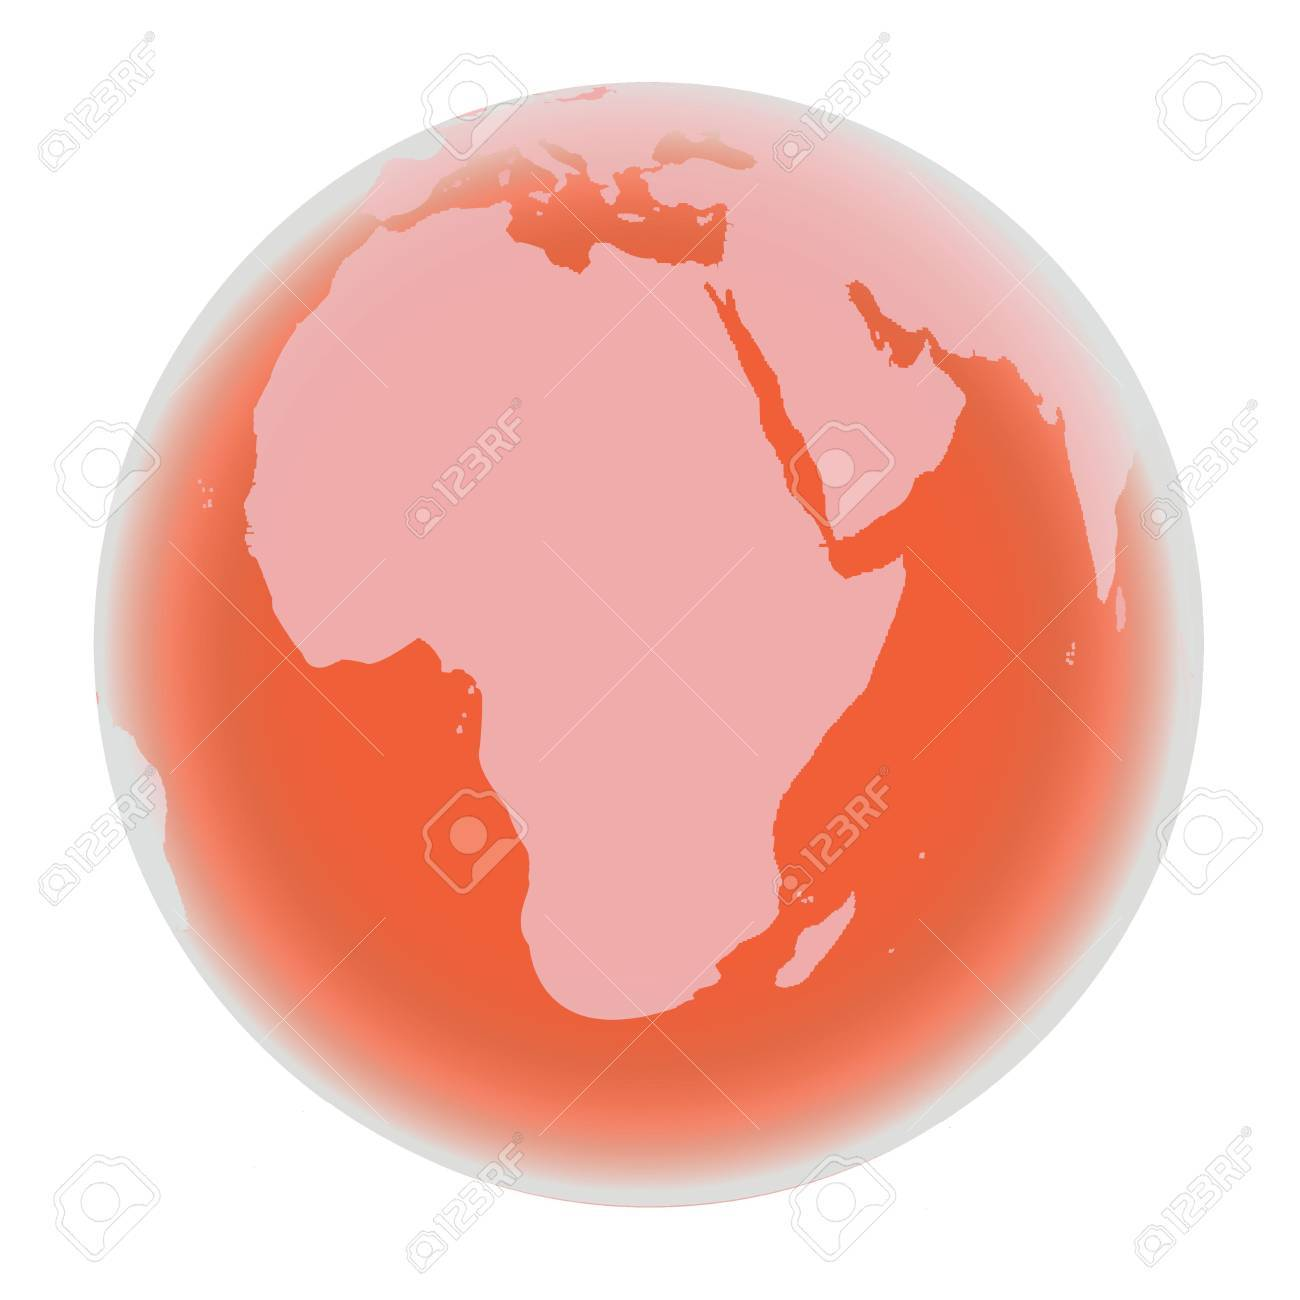 Planet Earth in bright red tones, isolated on white background Stock Photo - 6196594